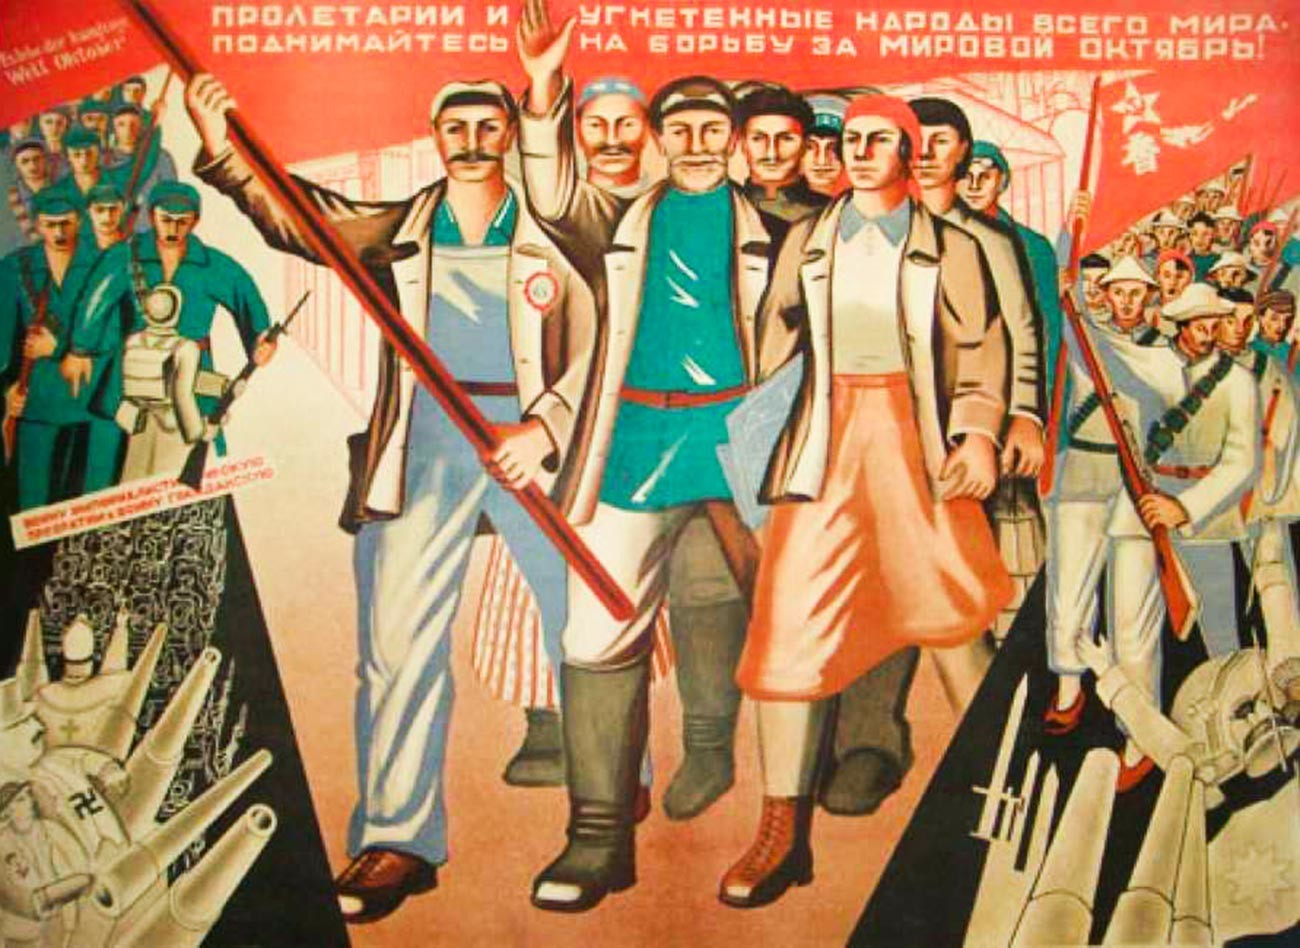 Proletarians and subjugated peoples of the world, rise to fight a war for the global October!